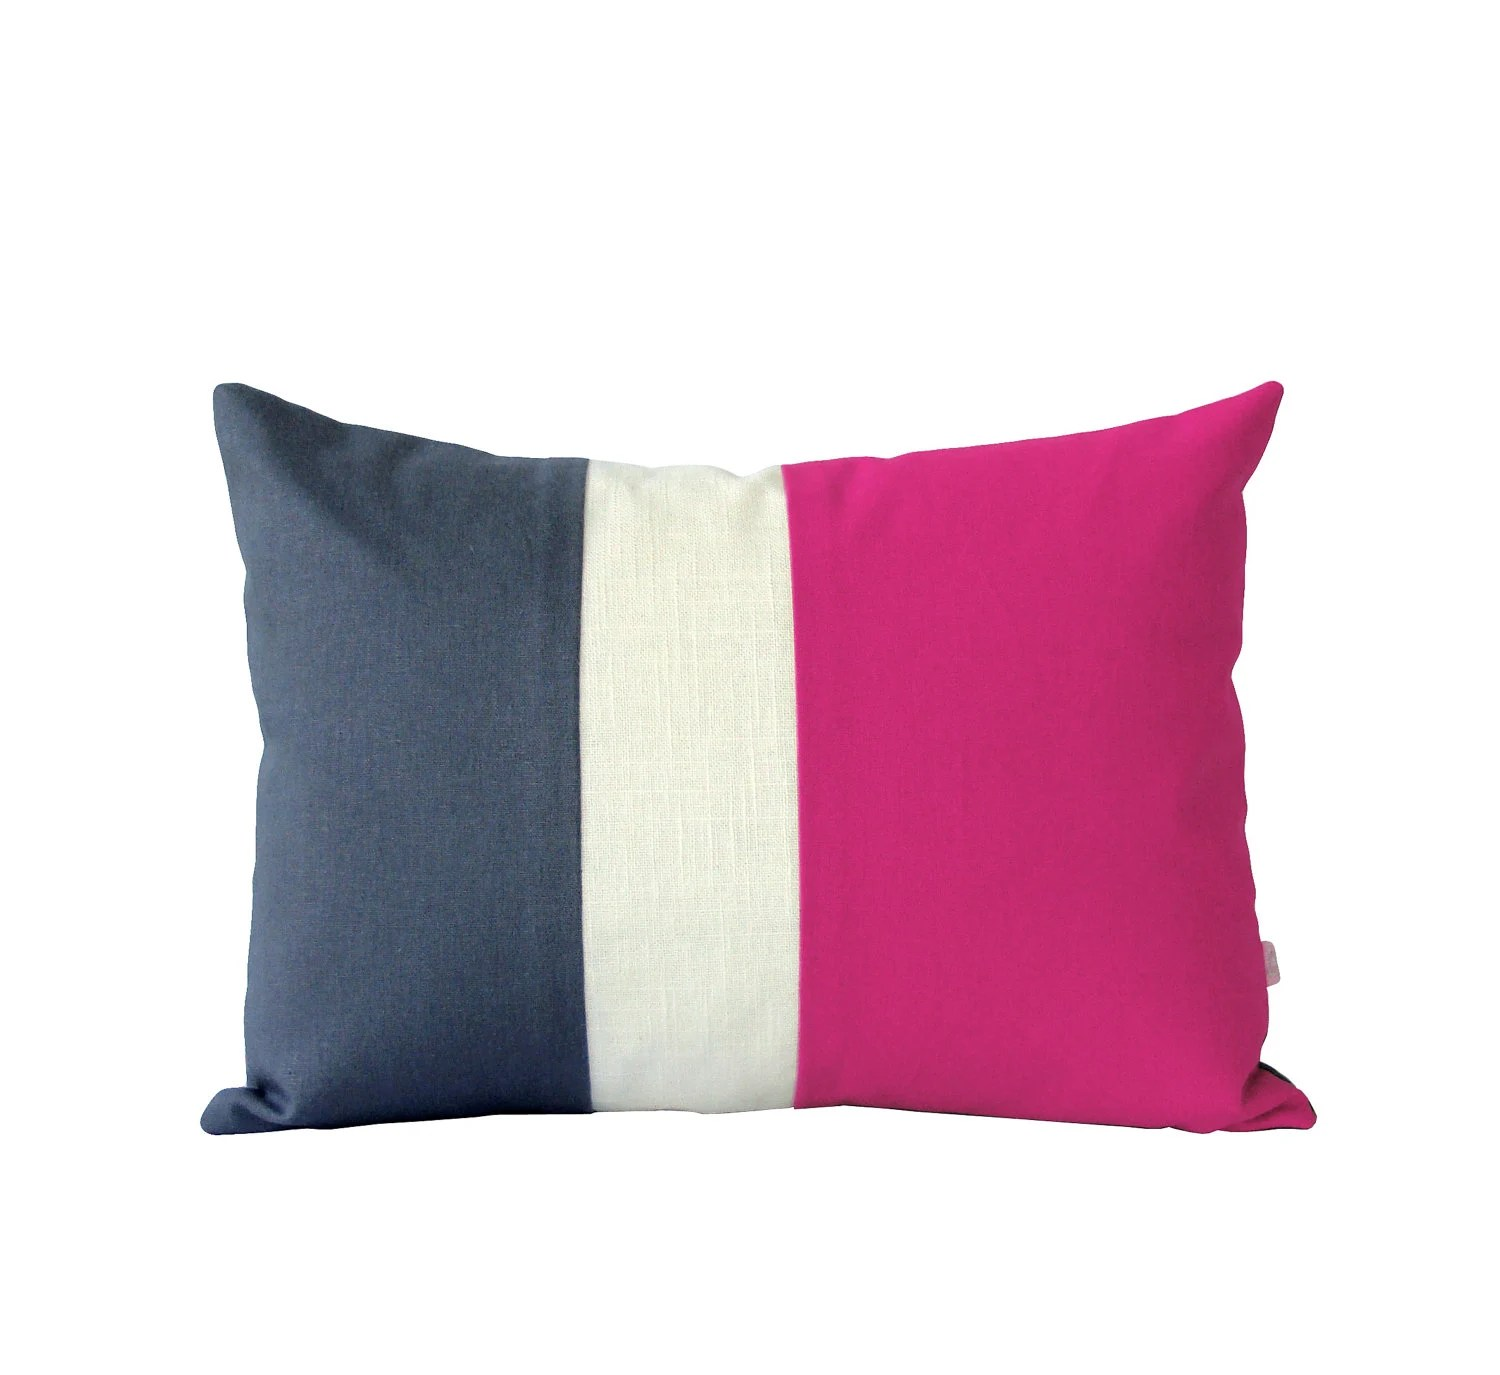 Bright Pink and Gray Colorblock Cushion Cover Modern Home by JillianReneDecor Hot Pink Color Block Pillow Gift for Her Under 50 - JillianReneDecor